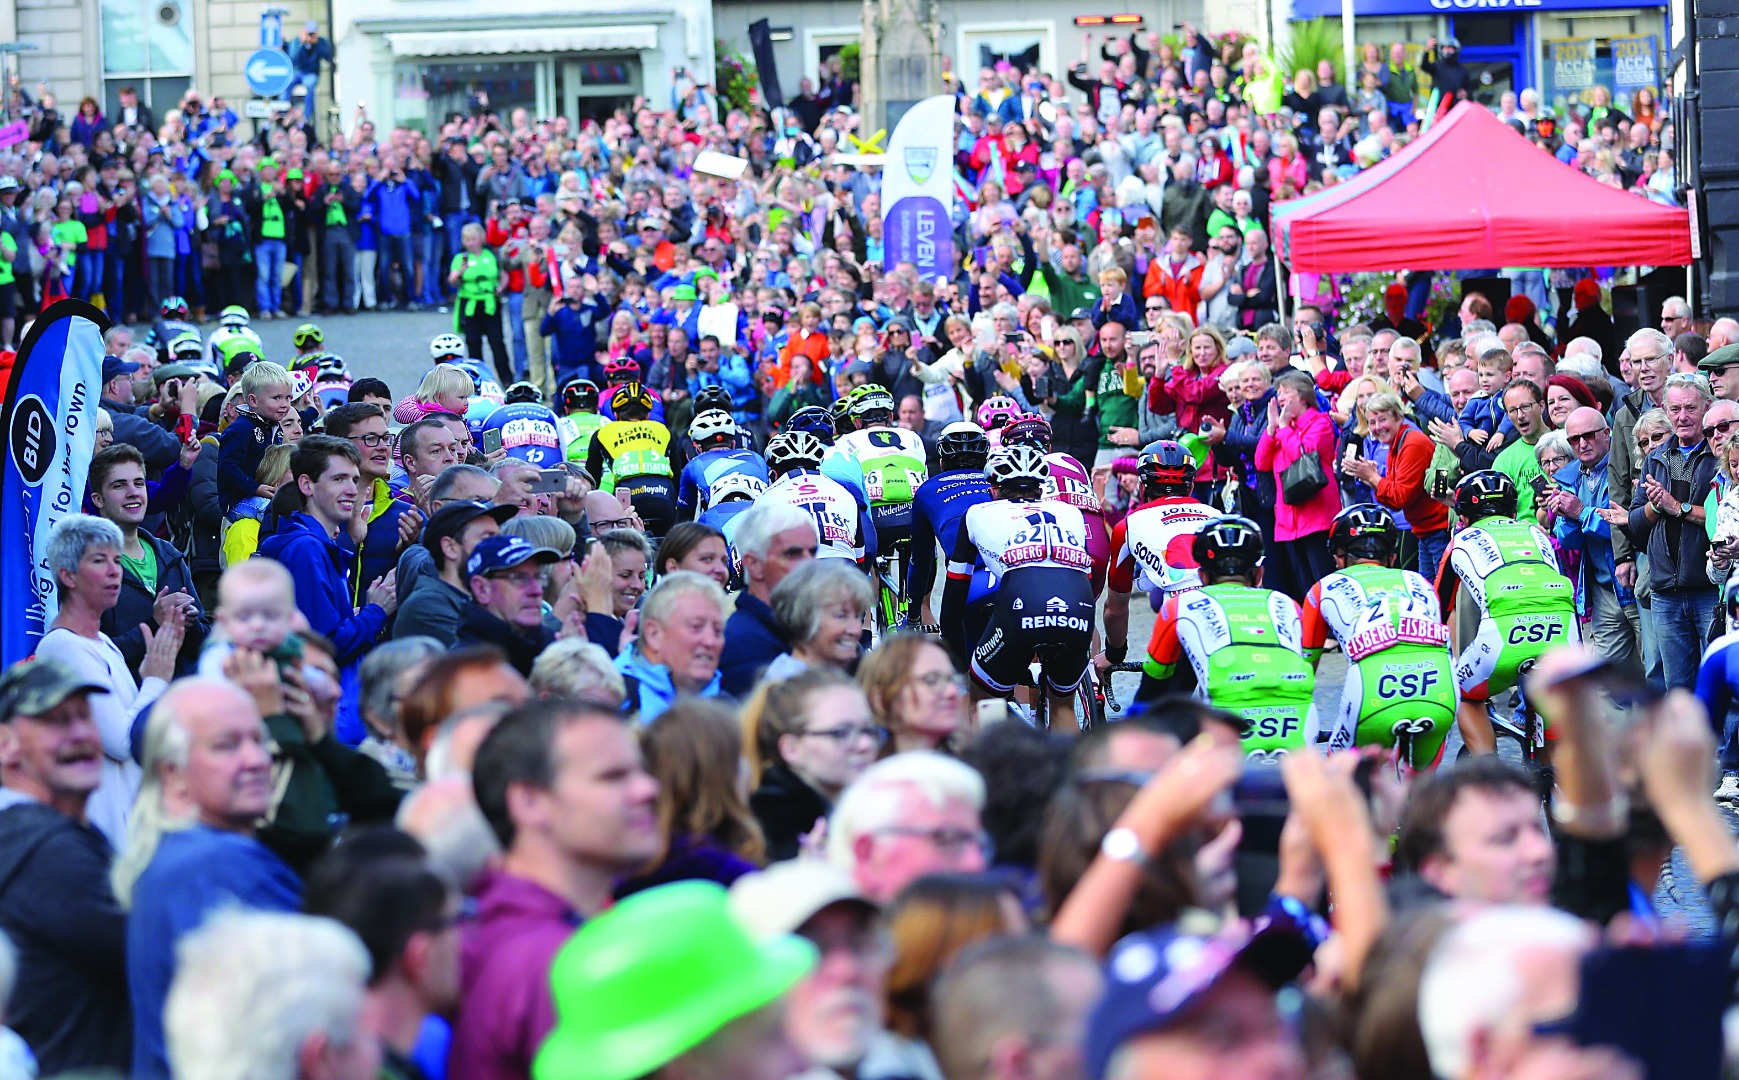 Show love for Bolton with outdoor art masterpieces for Tour of Britain